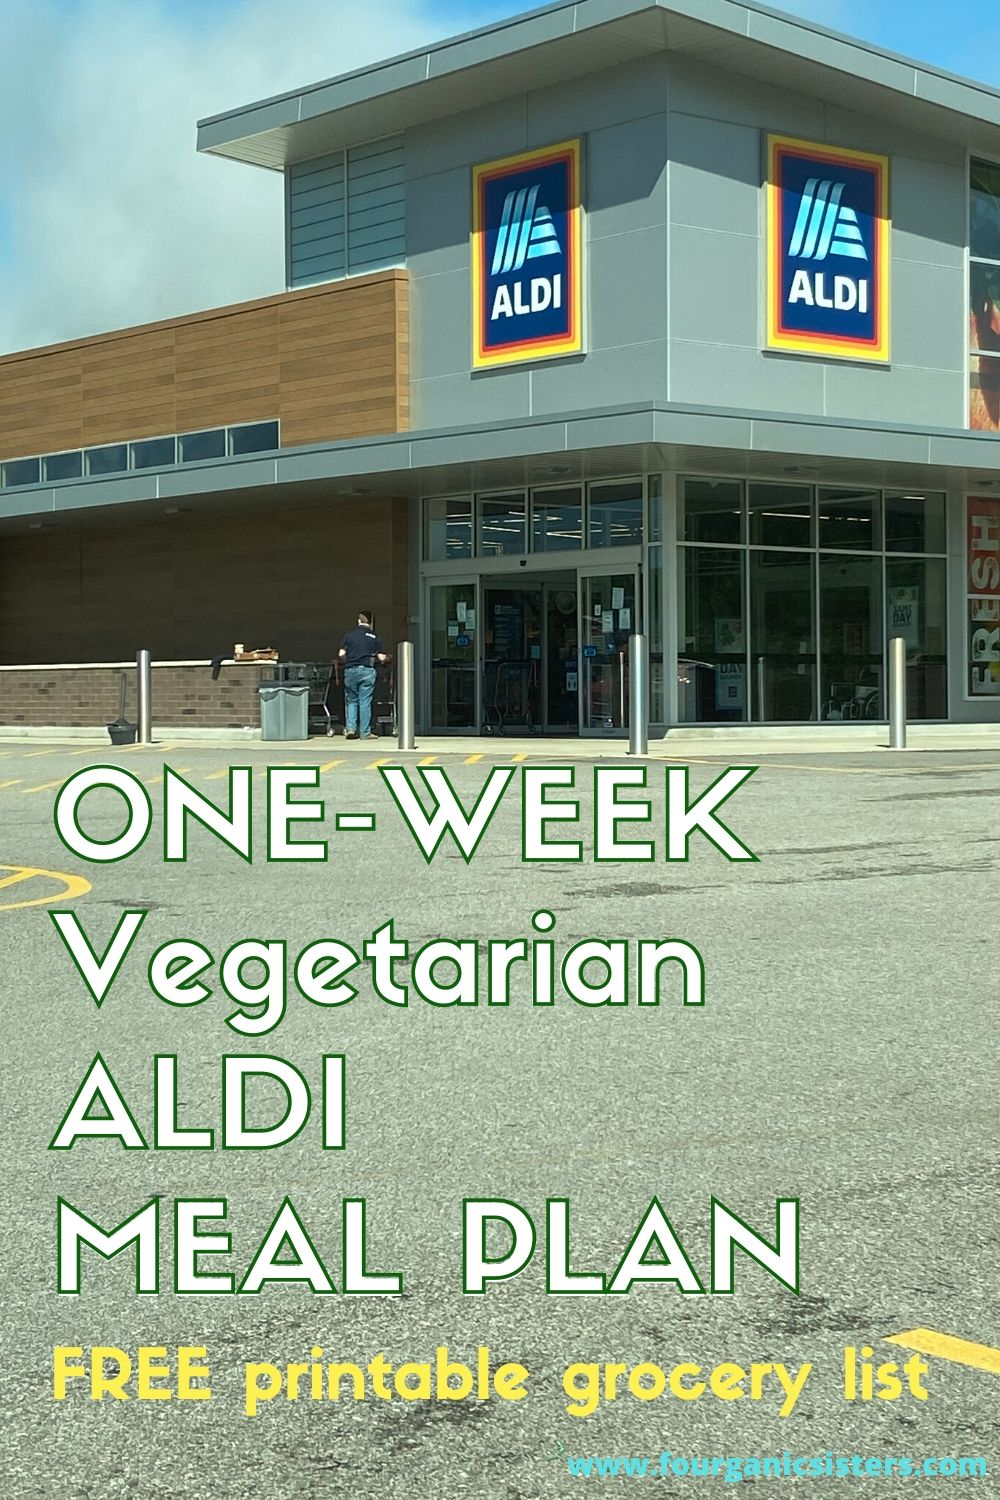 One-Week Aldi Vegetarian Meal Plan | Fourganic Sisters